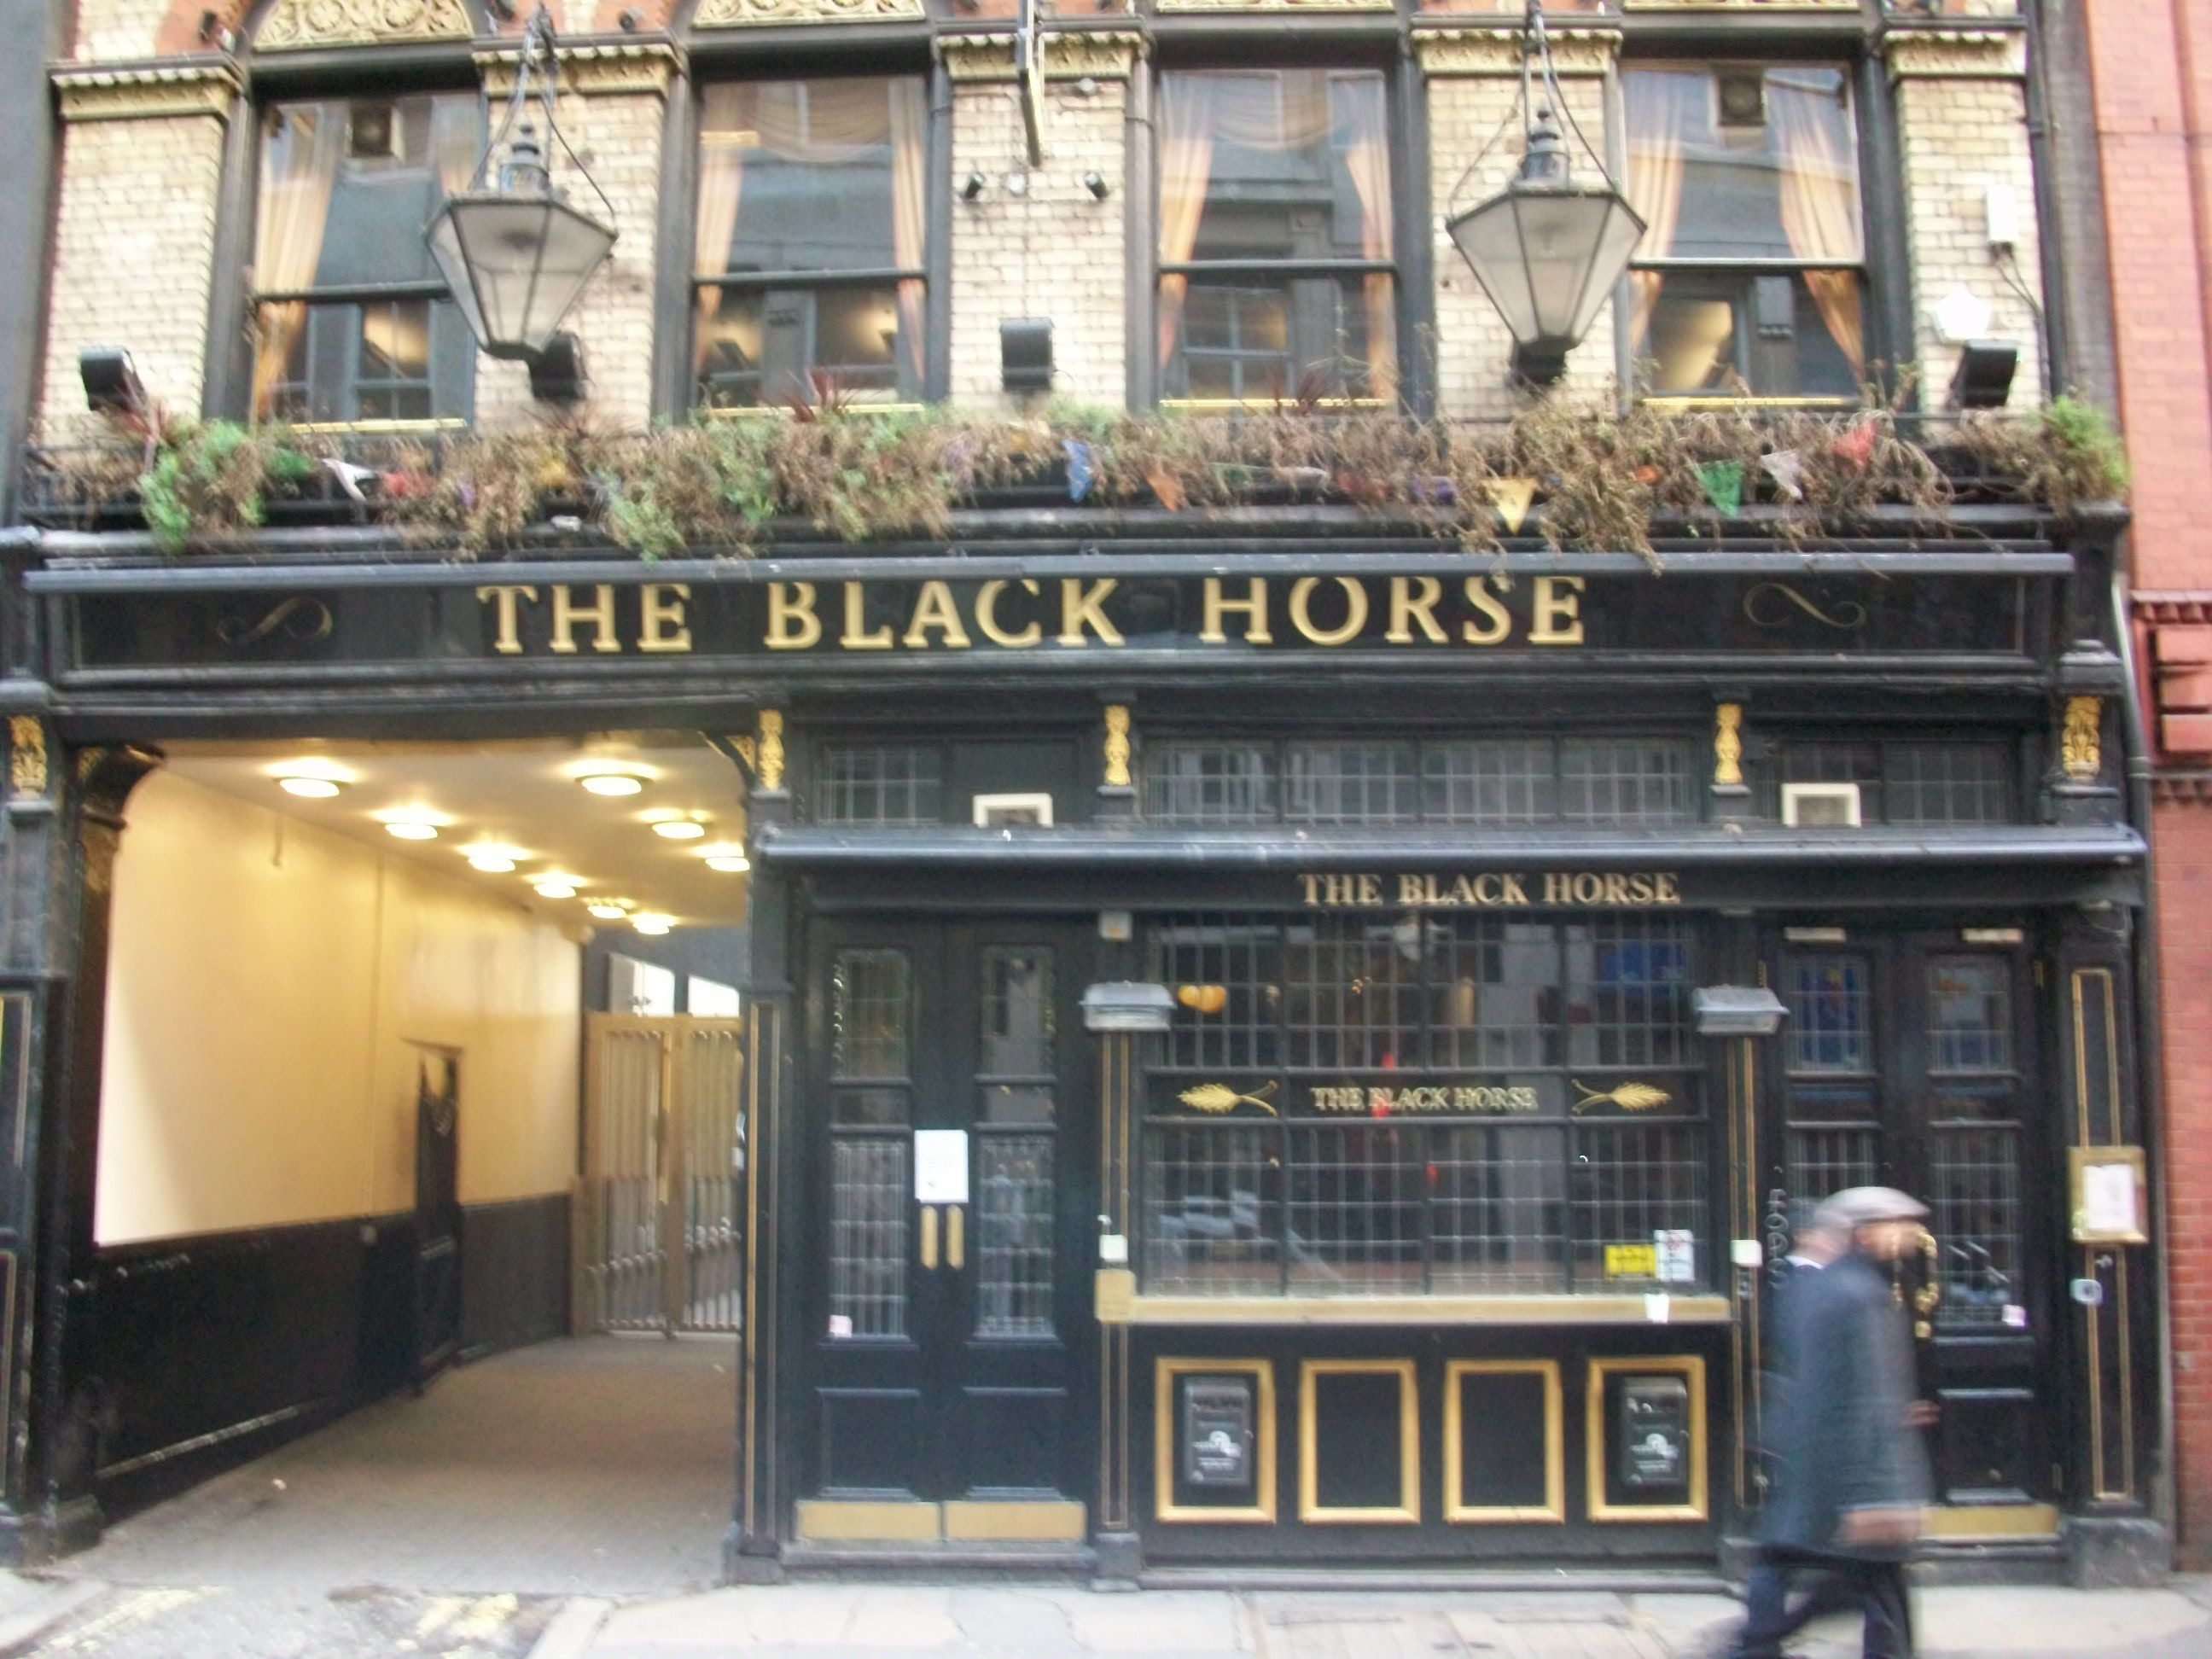 Front of the The Black Horse pub